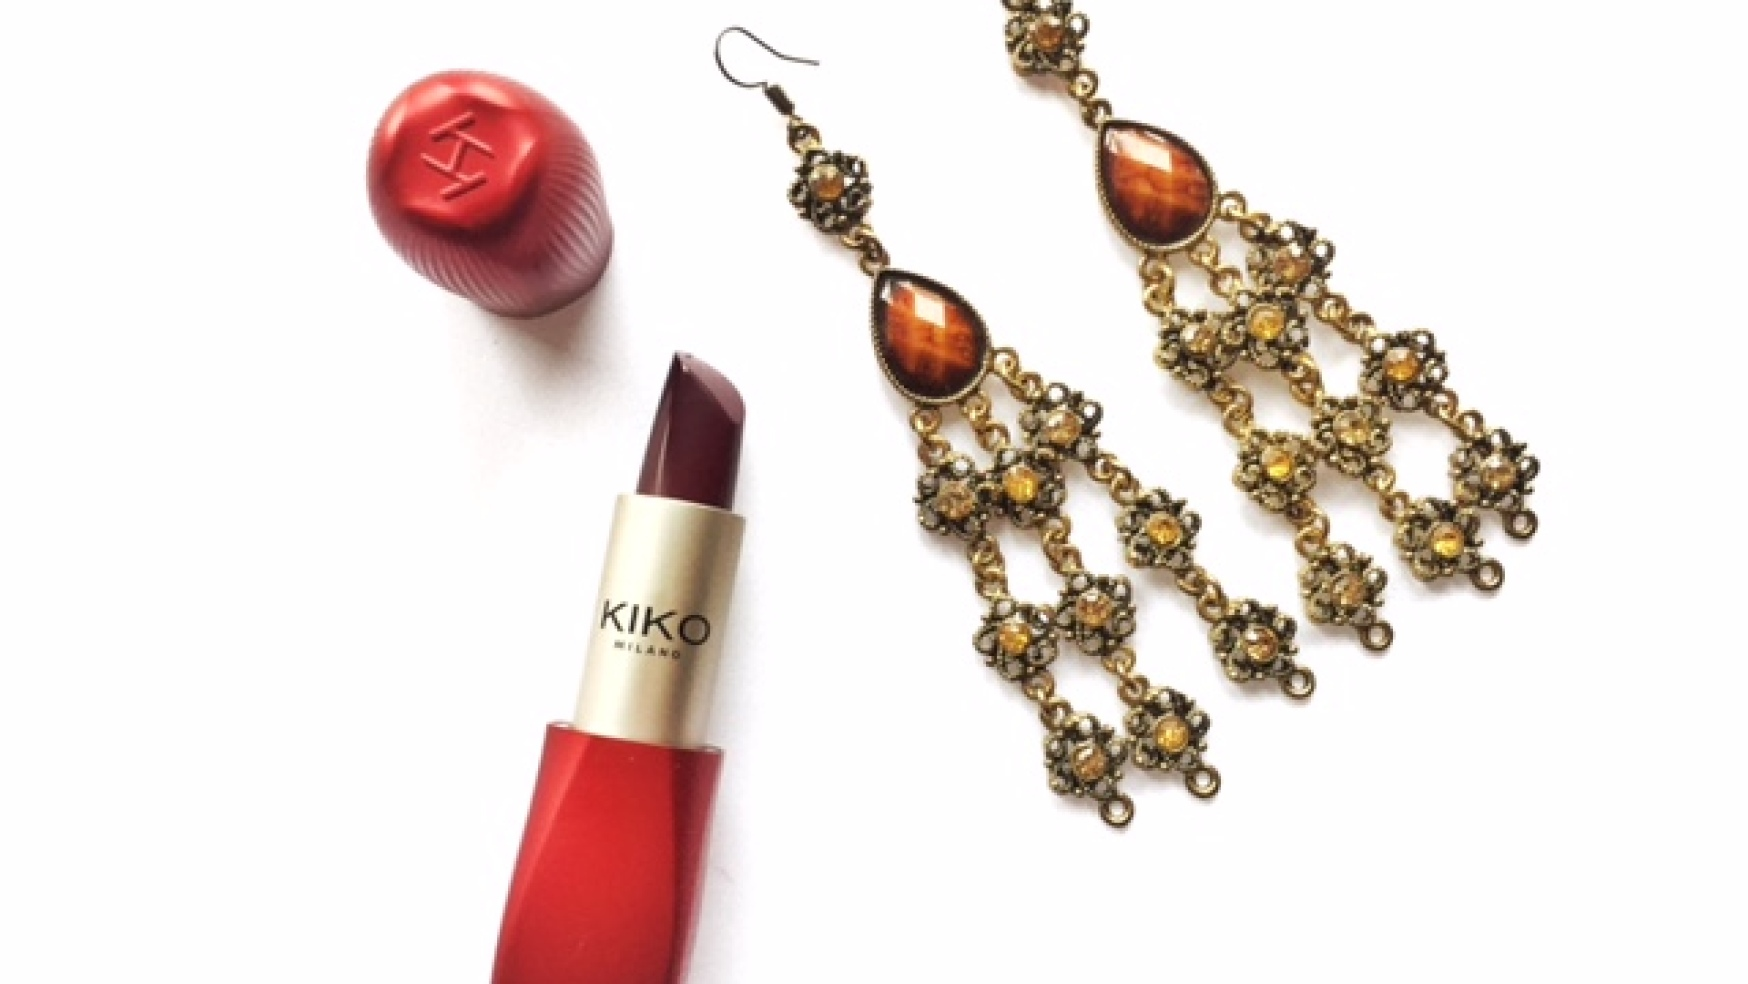 KIKO HOLIDAY COLLECTION